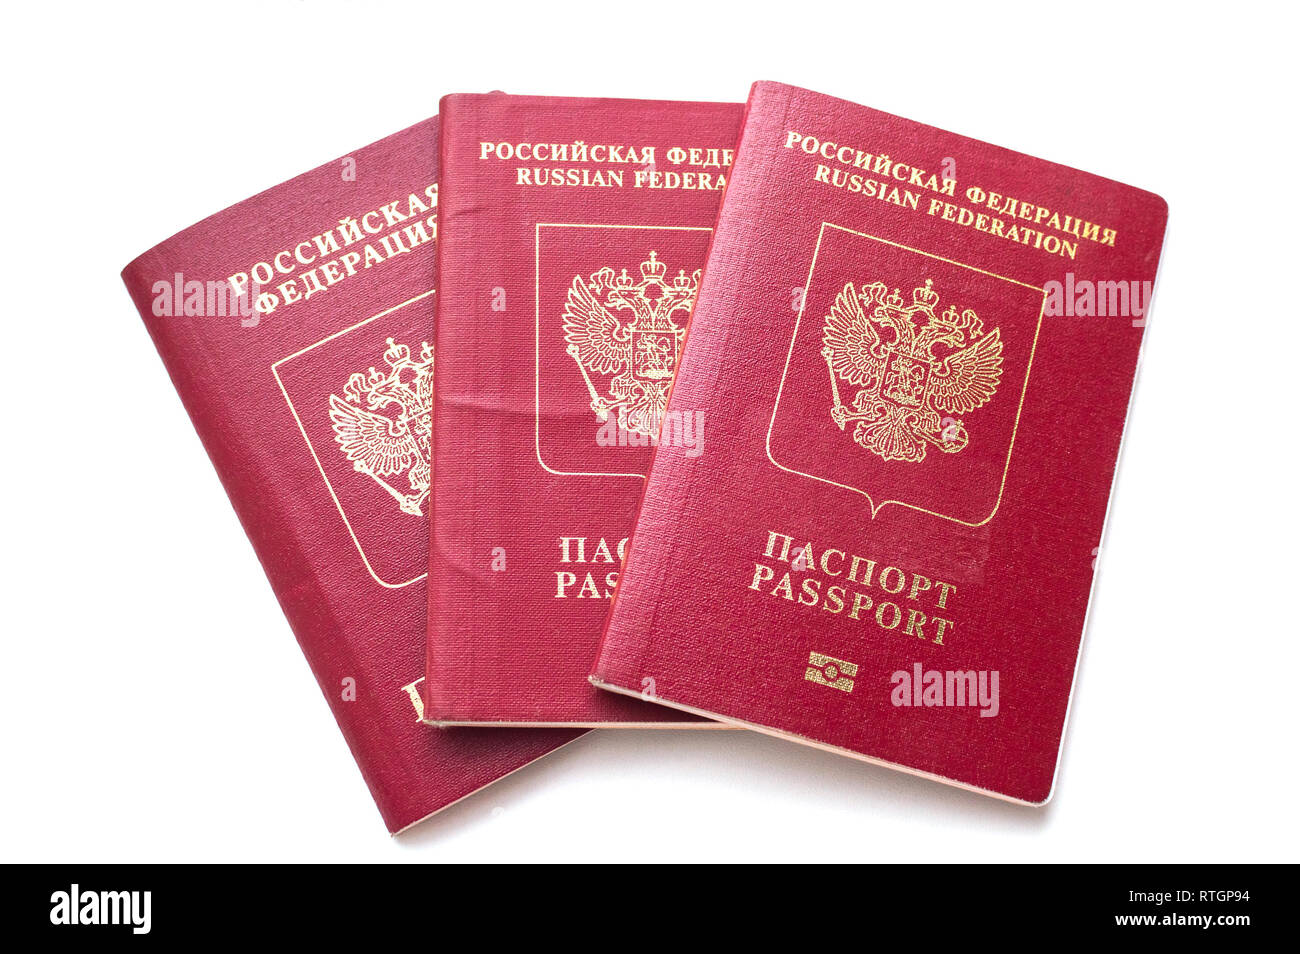 Three passport of the citizen of the Russian Federation on a white background - Stock Image